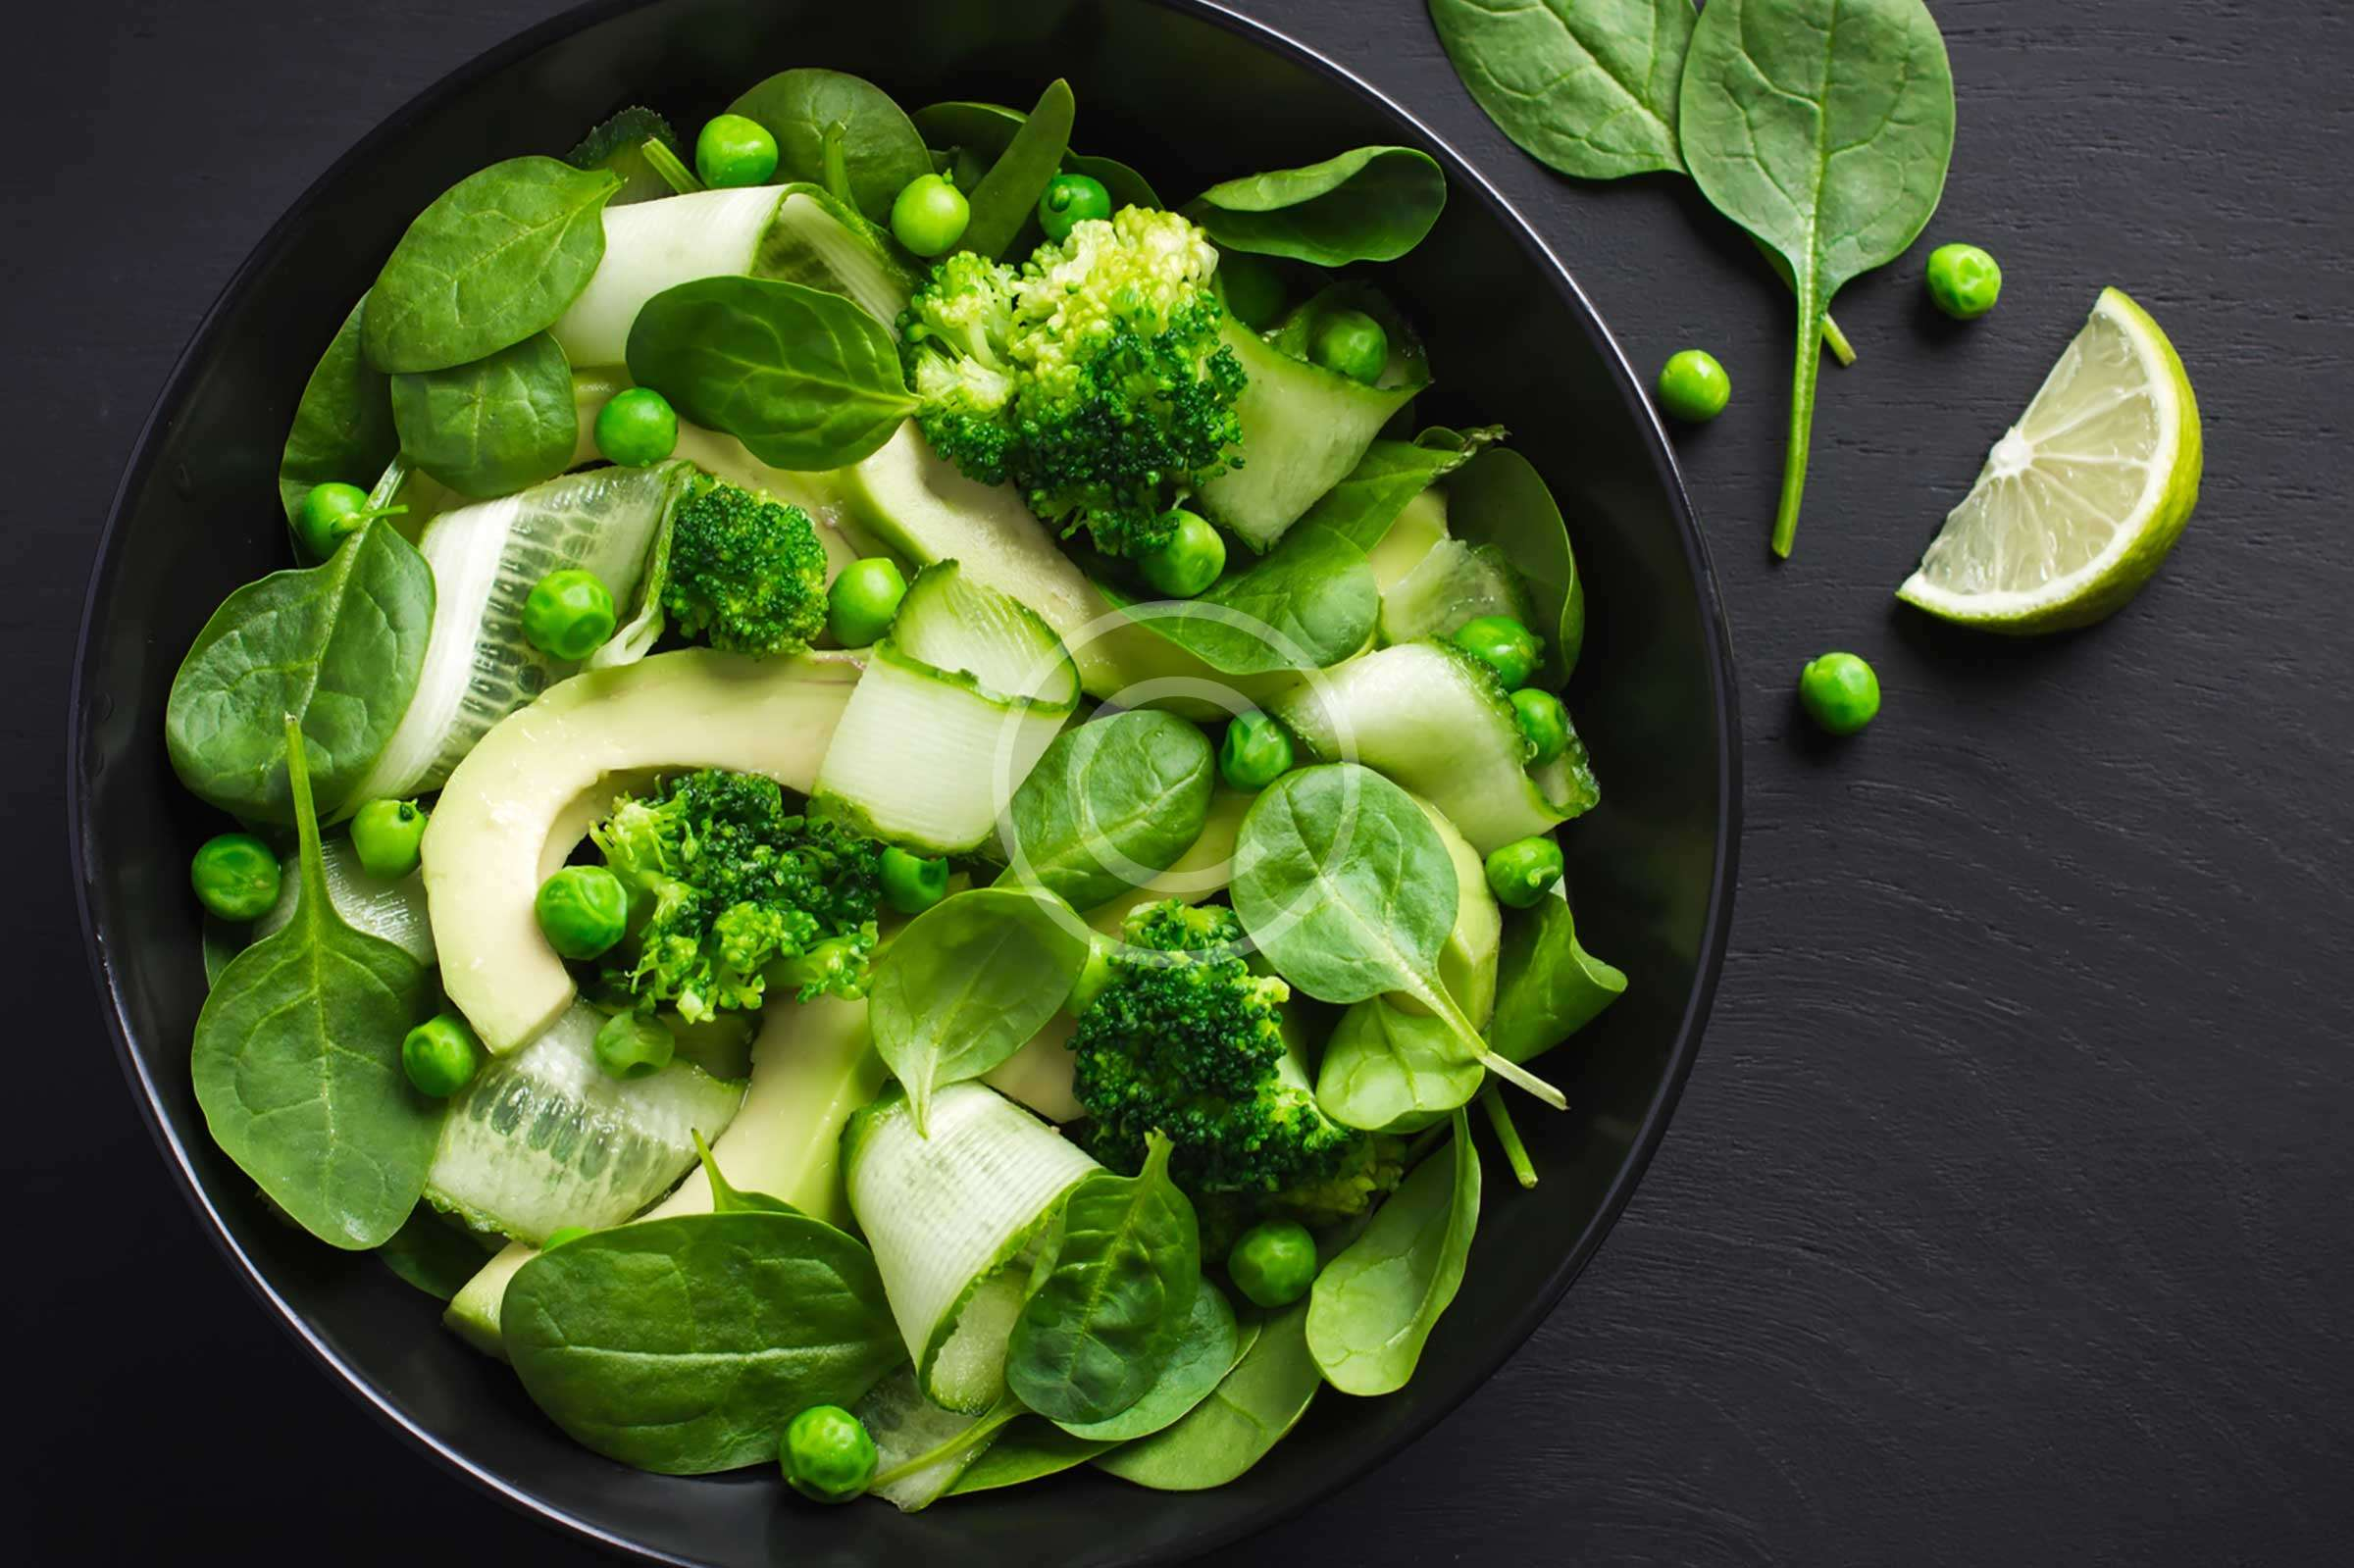 Green Salad with Cucumber, Spinach and Avocado